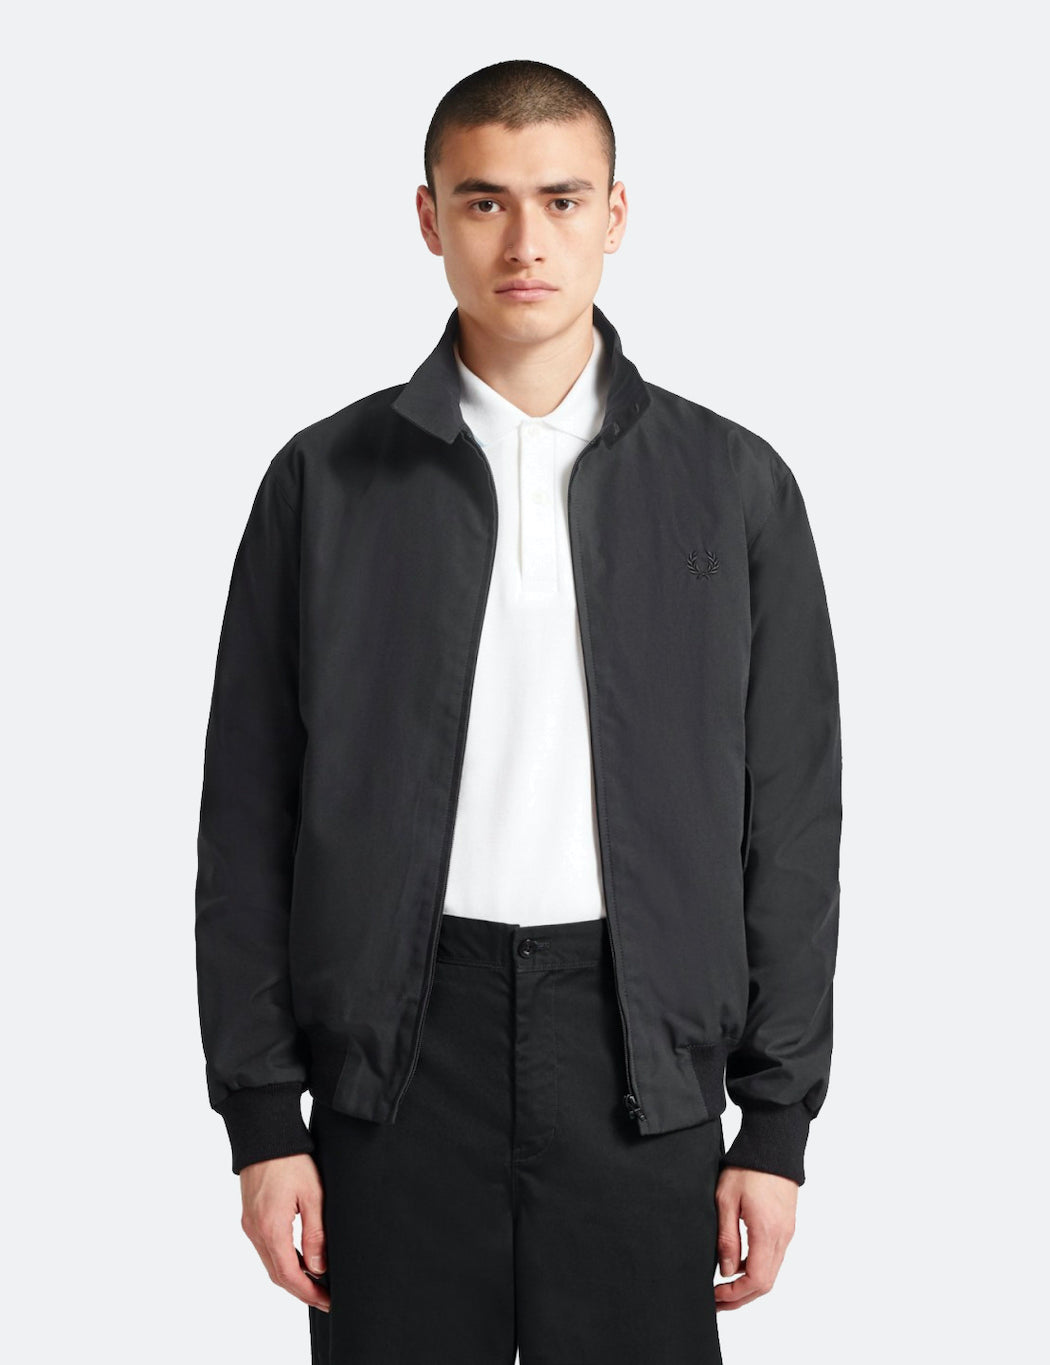 Fred Perry Re-issues Harrington Jacket - Black | URBAN EXCESS.